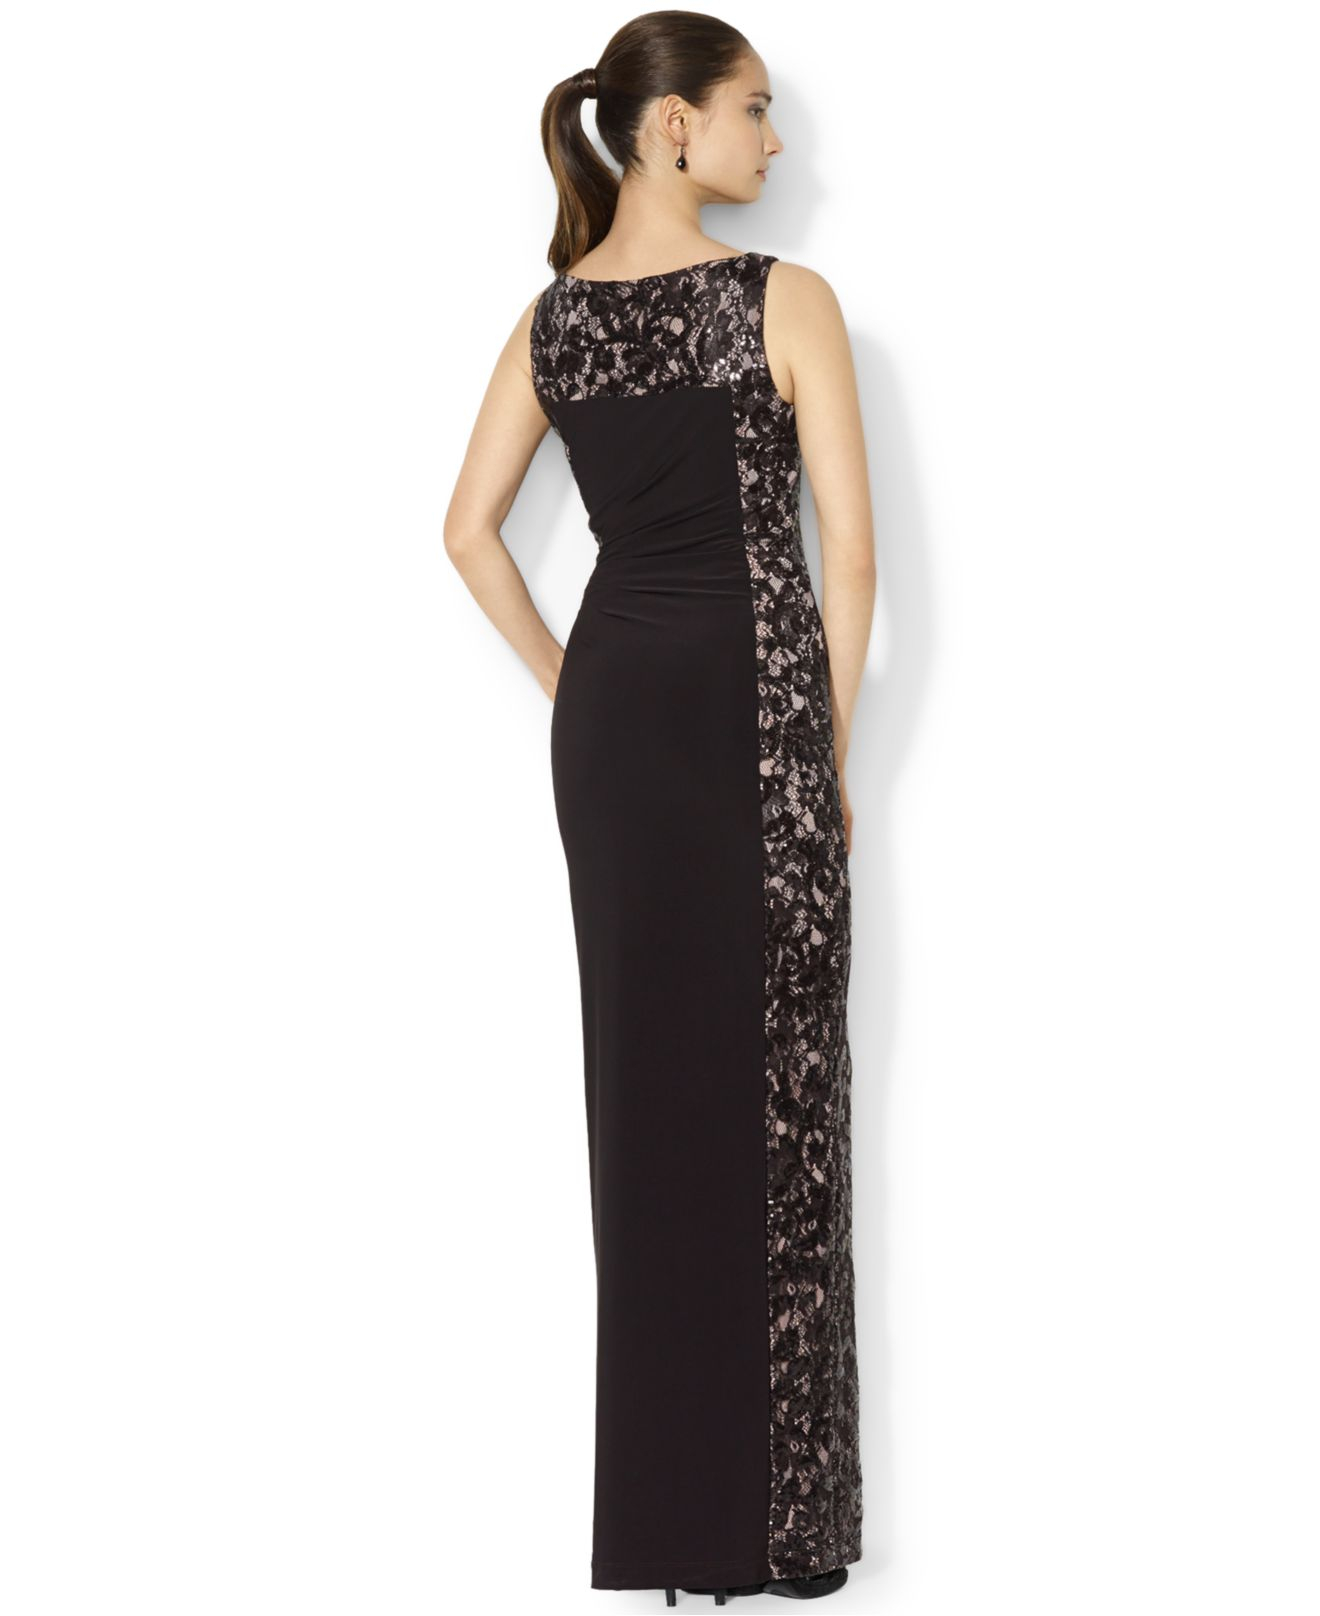 Lyst - Lauren By Ralph Lauren Petite Sleeveless Illusion-Lace Gown ...